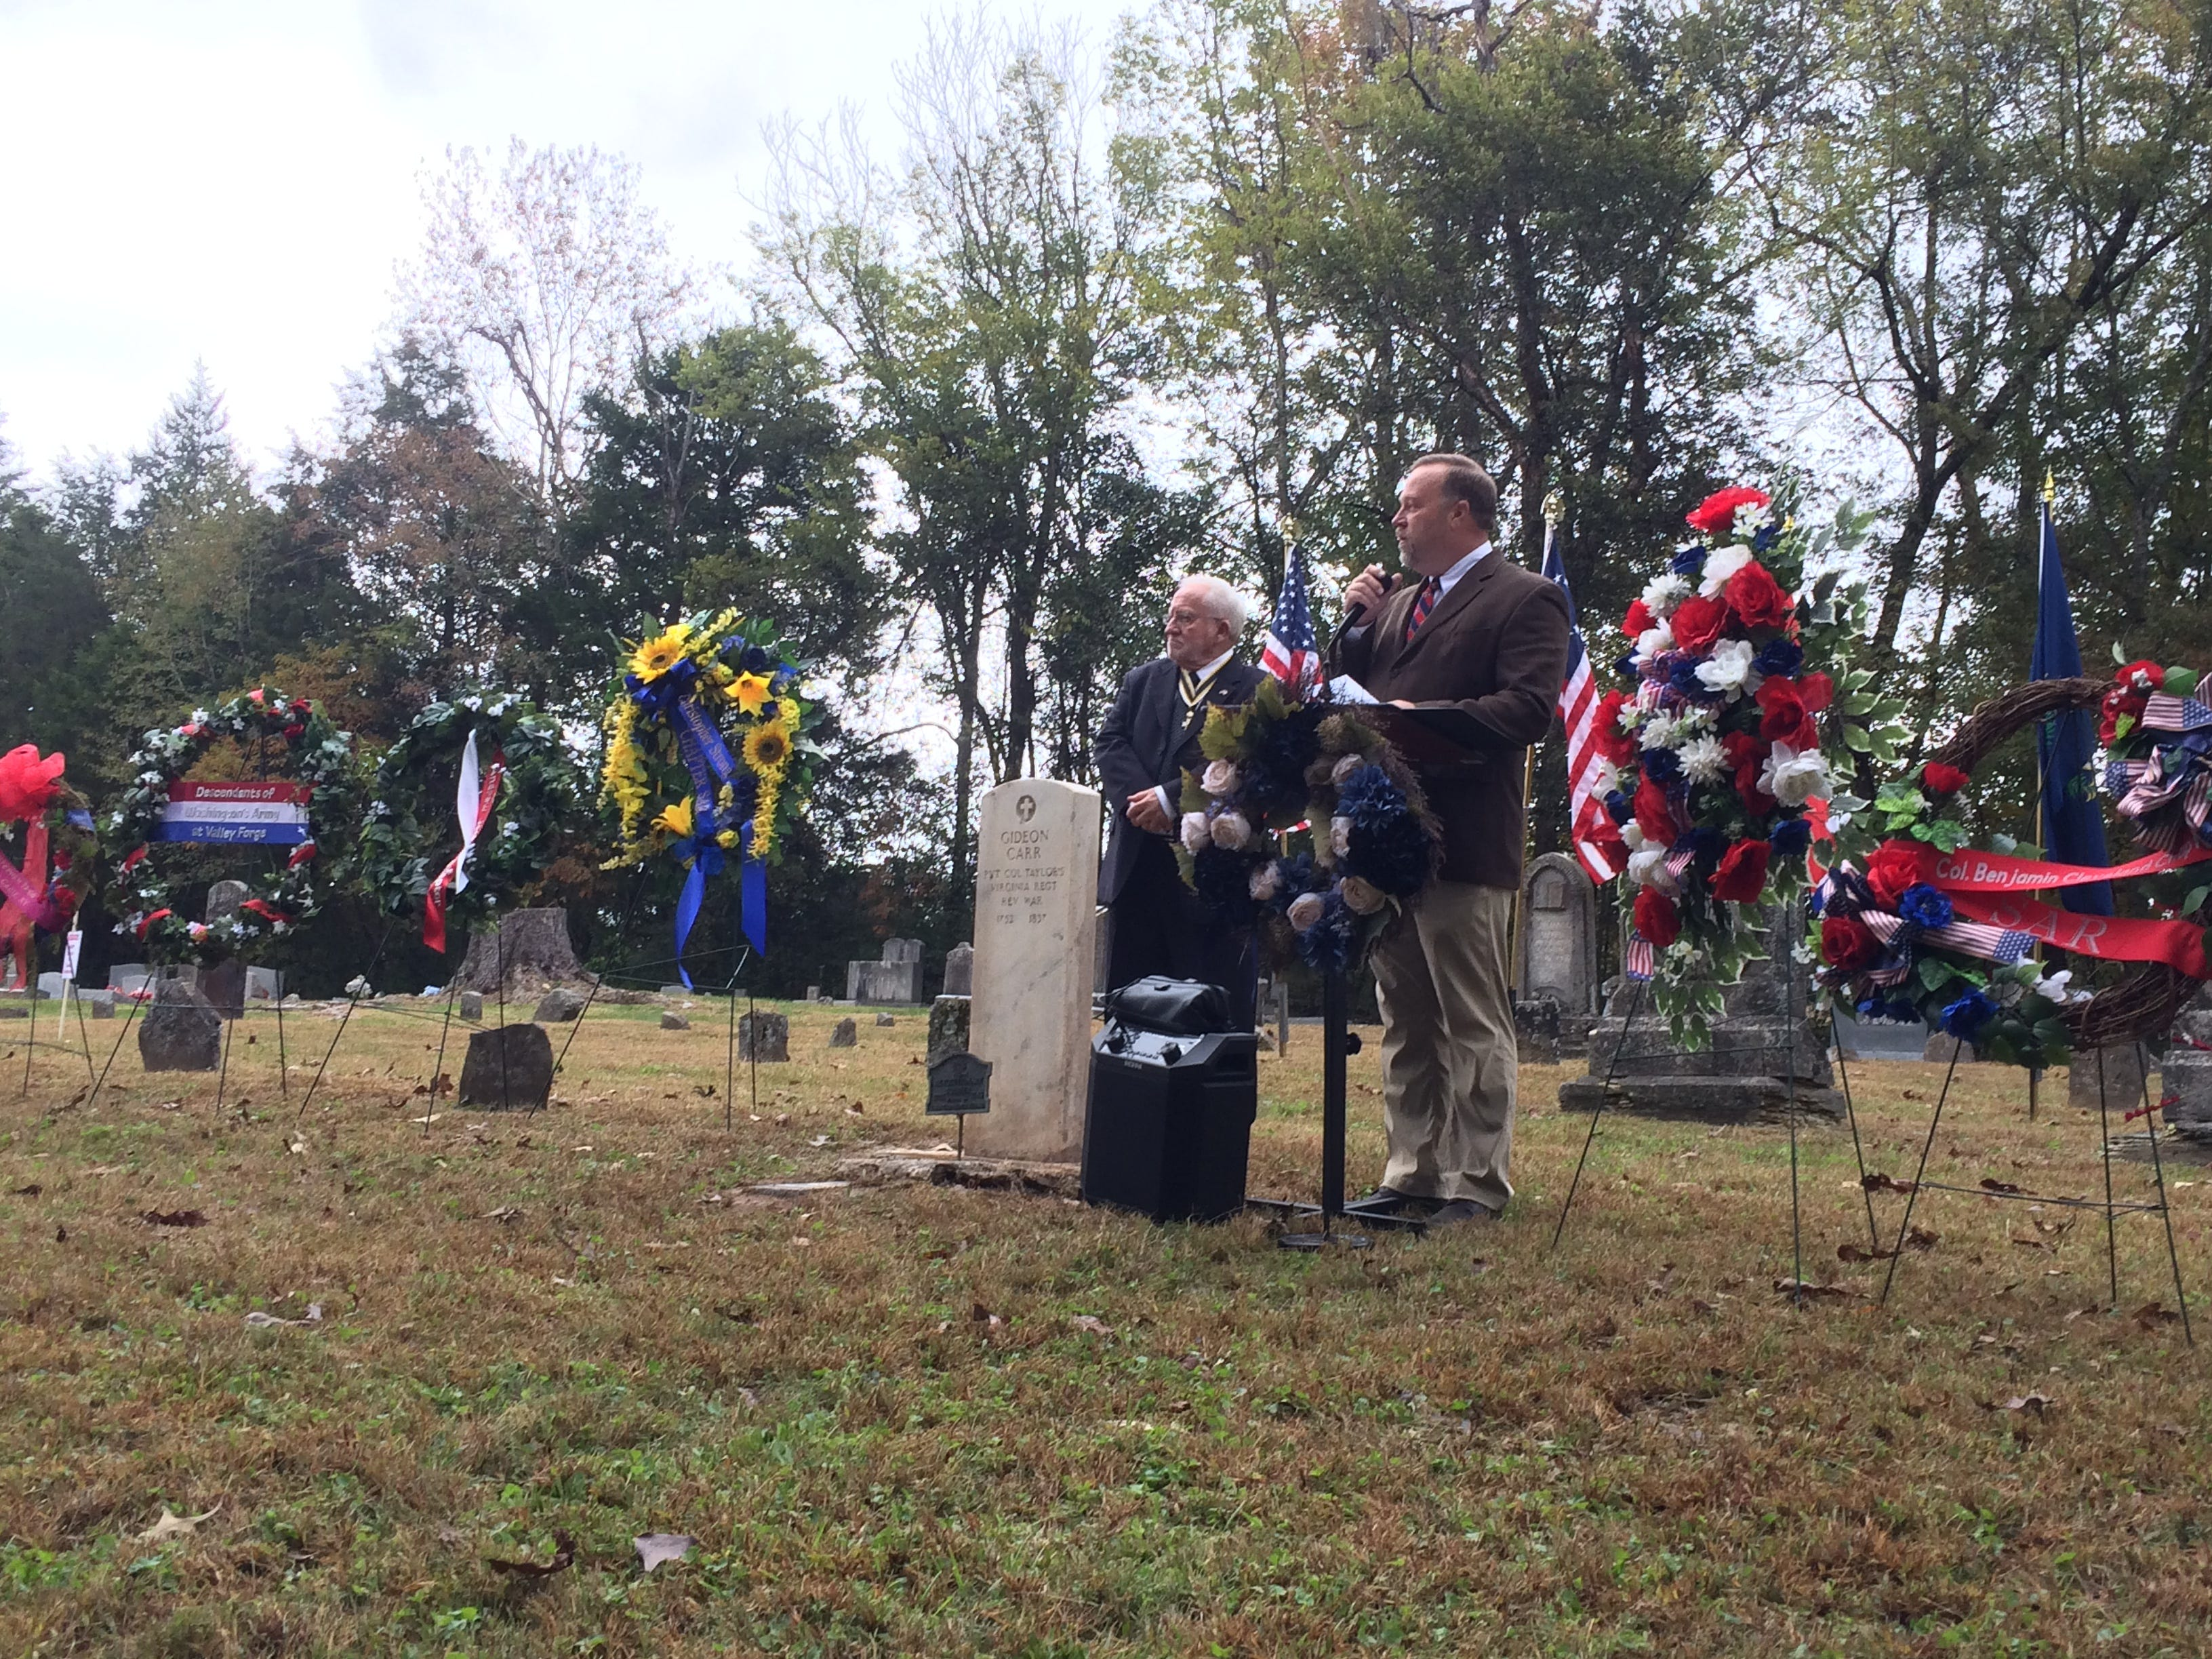 Alan Ragan at the ceremony Saturday honoring Gideon Carr at Stuart Cemetery in Dickson County.